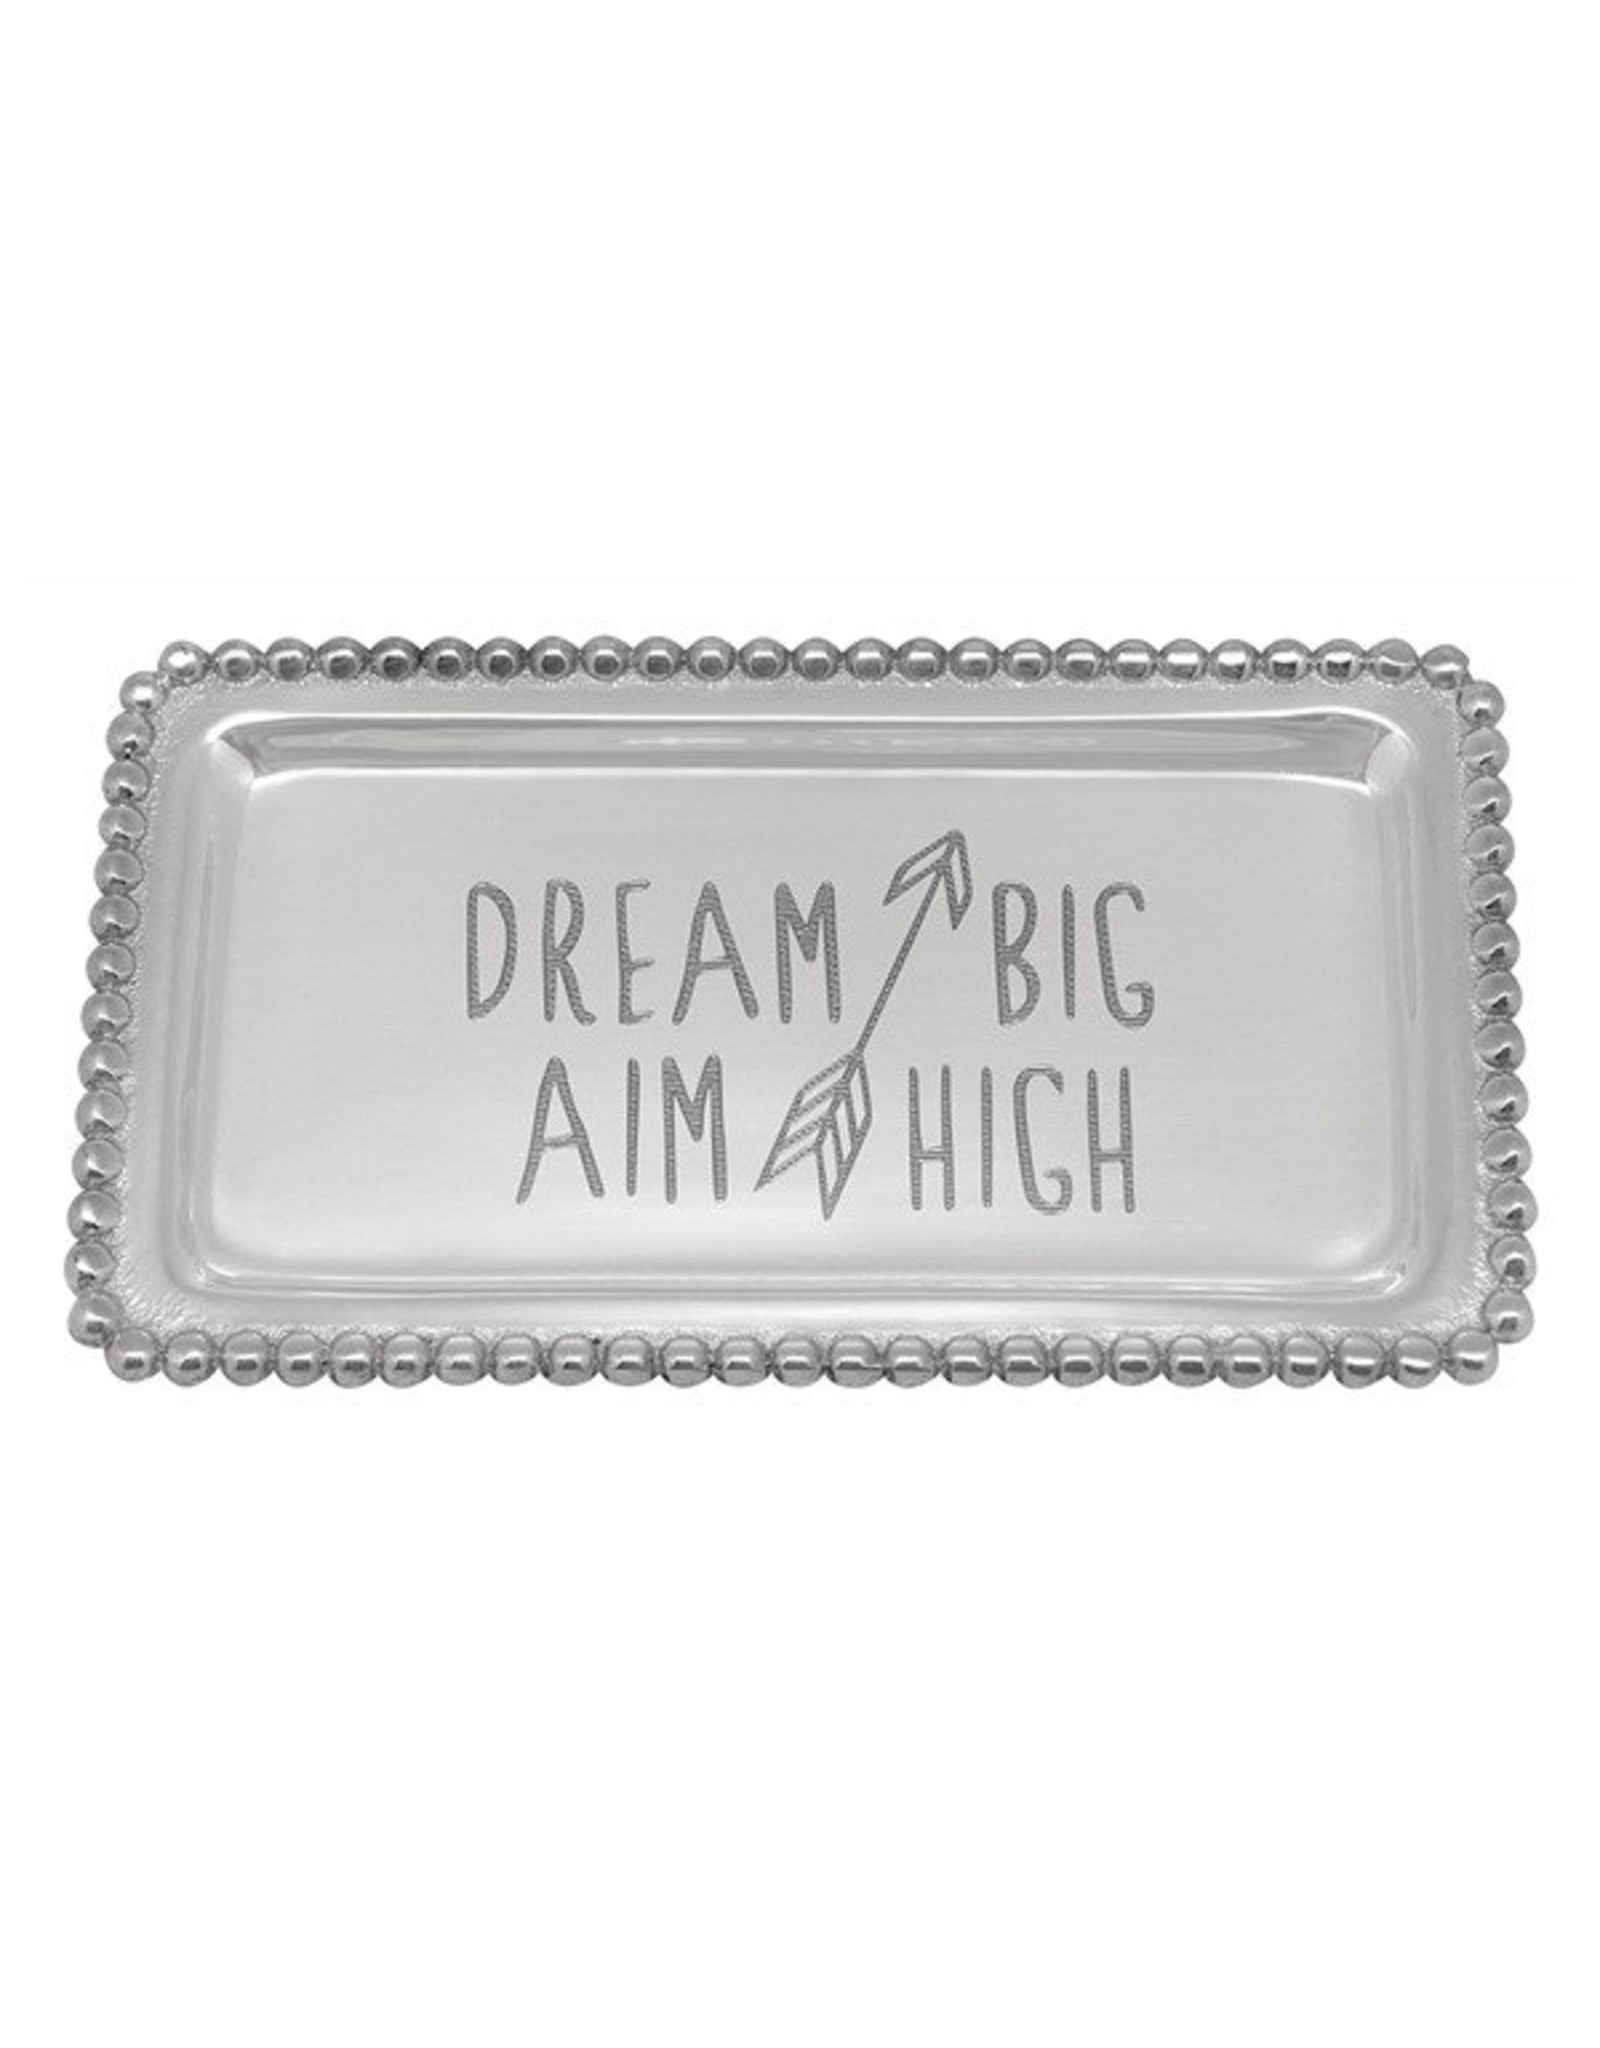 Mariposa Dream Big Aim High Tray